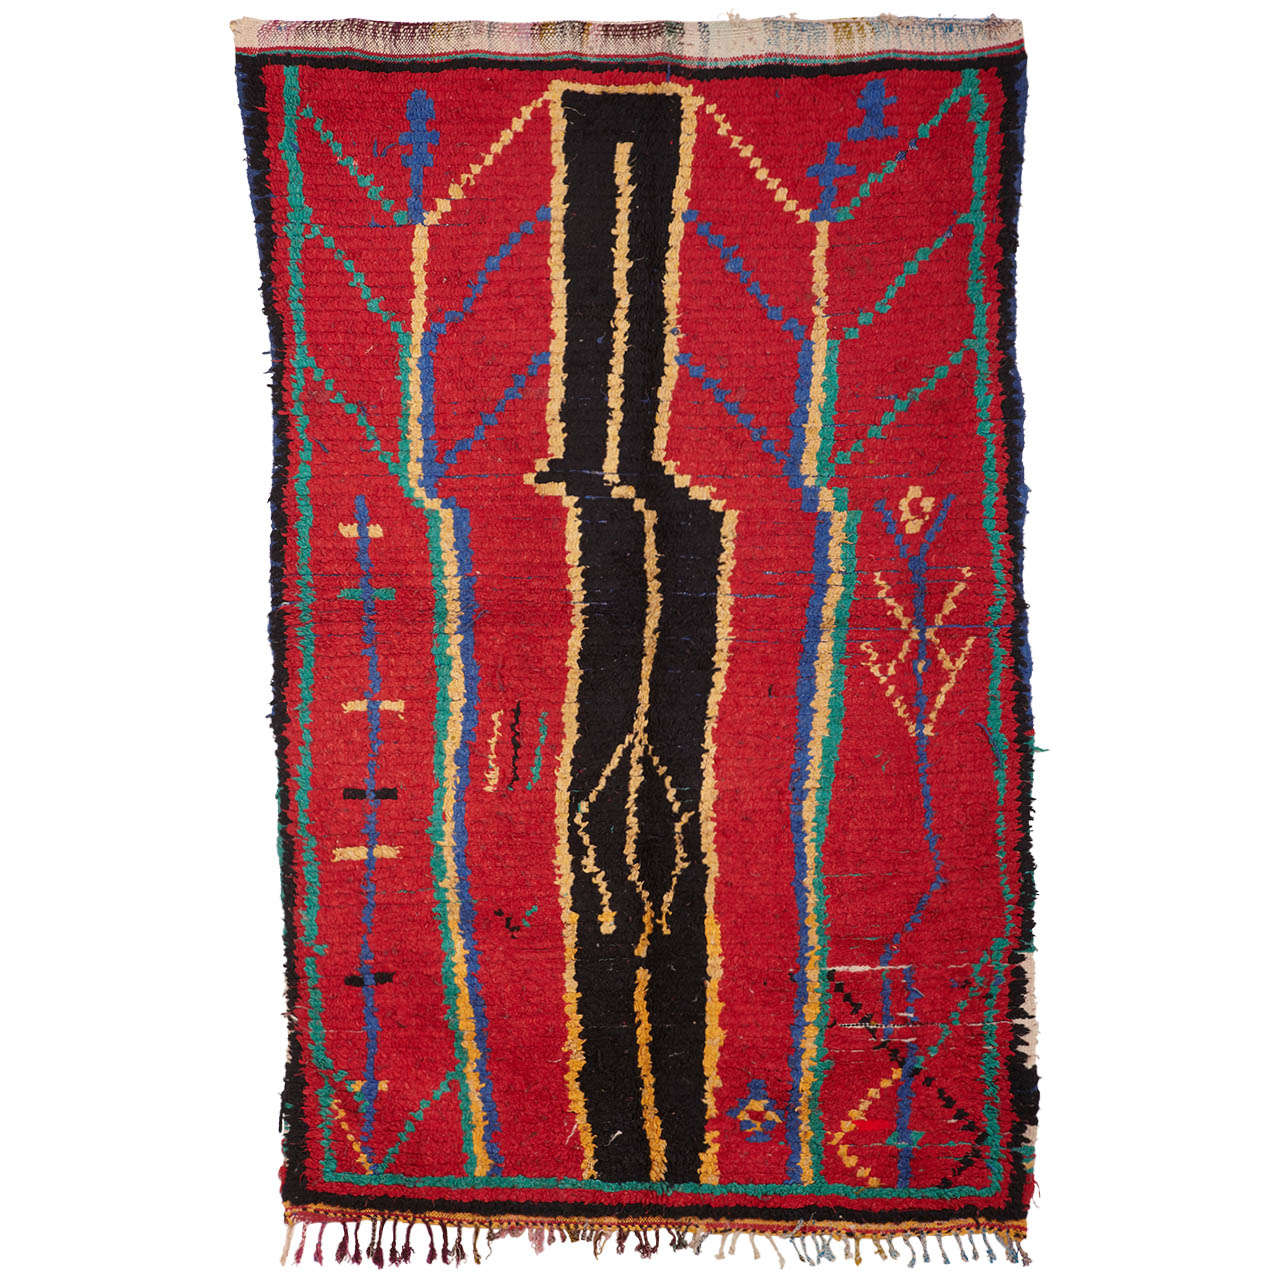 Moroccan Boucherouite Rug For Sale At 1stdibs: Primitive Moroccan Rug For Sale At 1stdibs